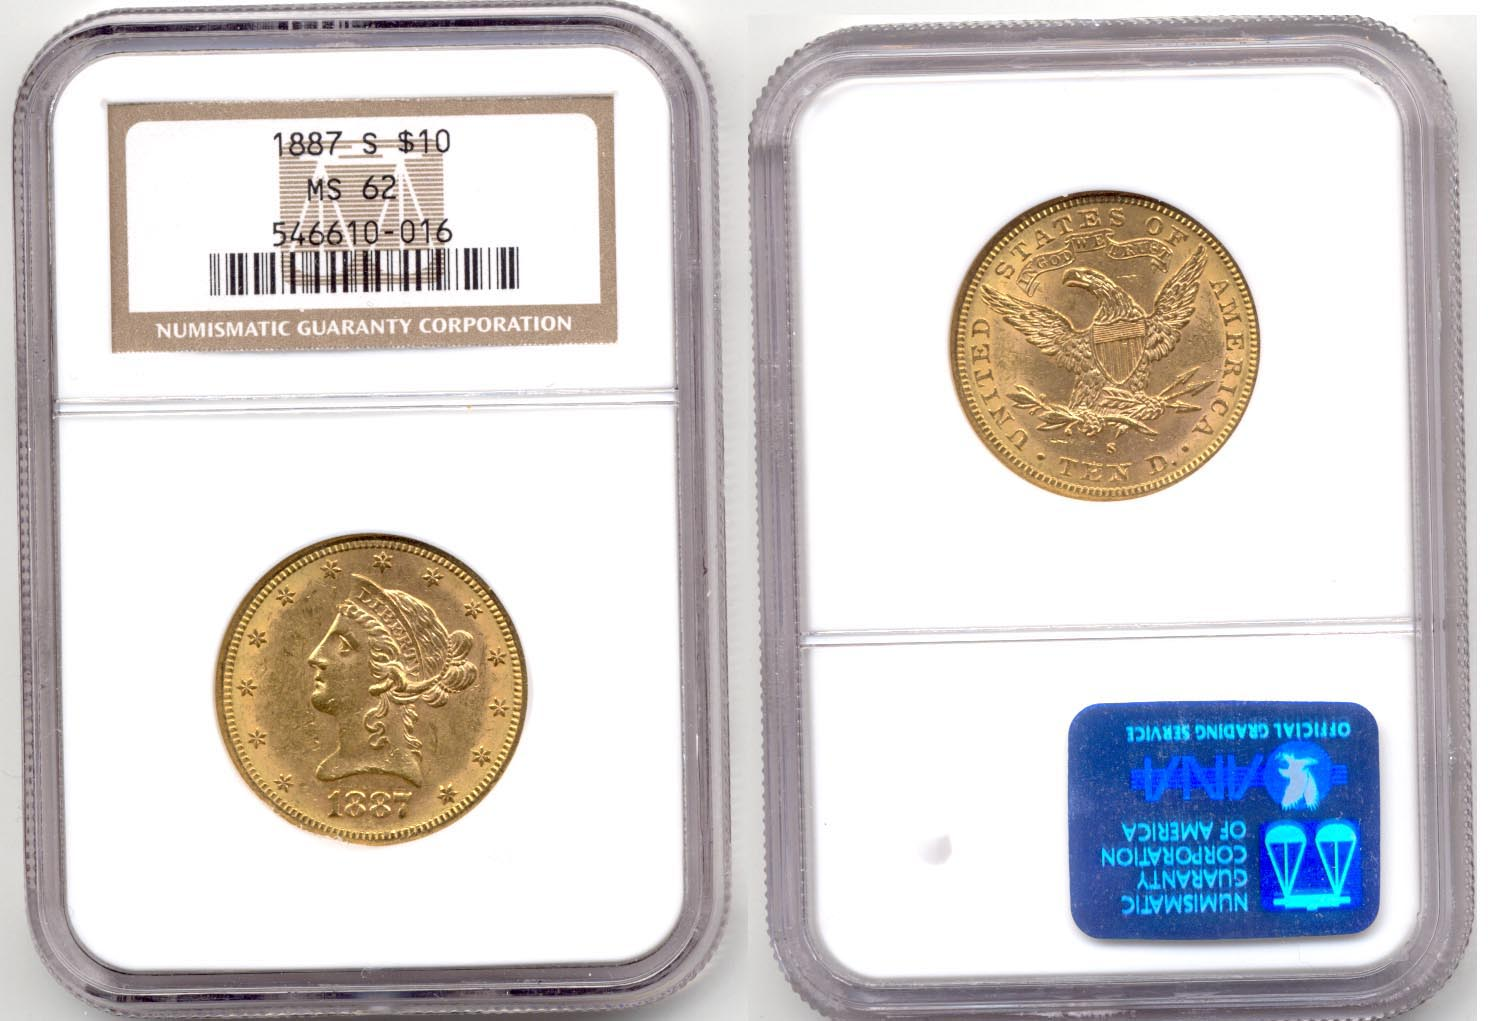 1887-S $10.00 Gold Eagle NGC MS-62